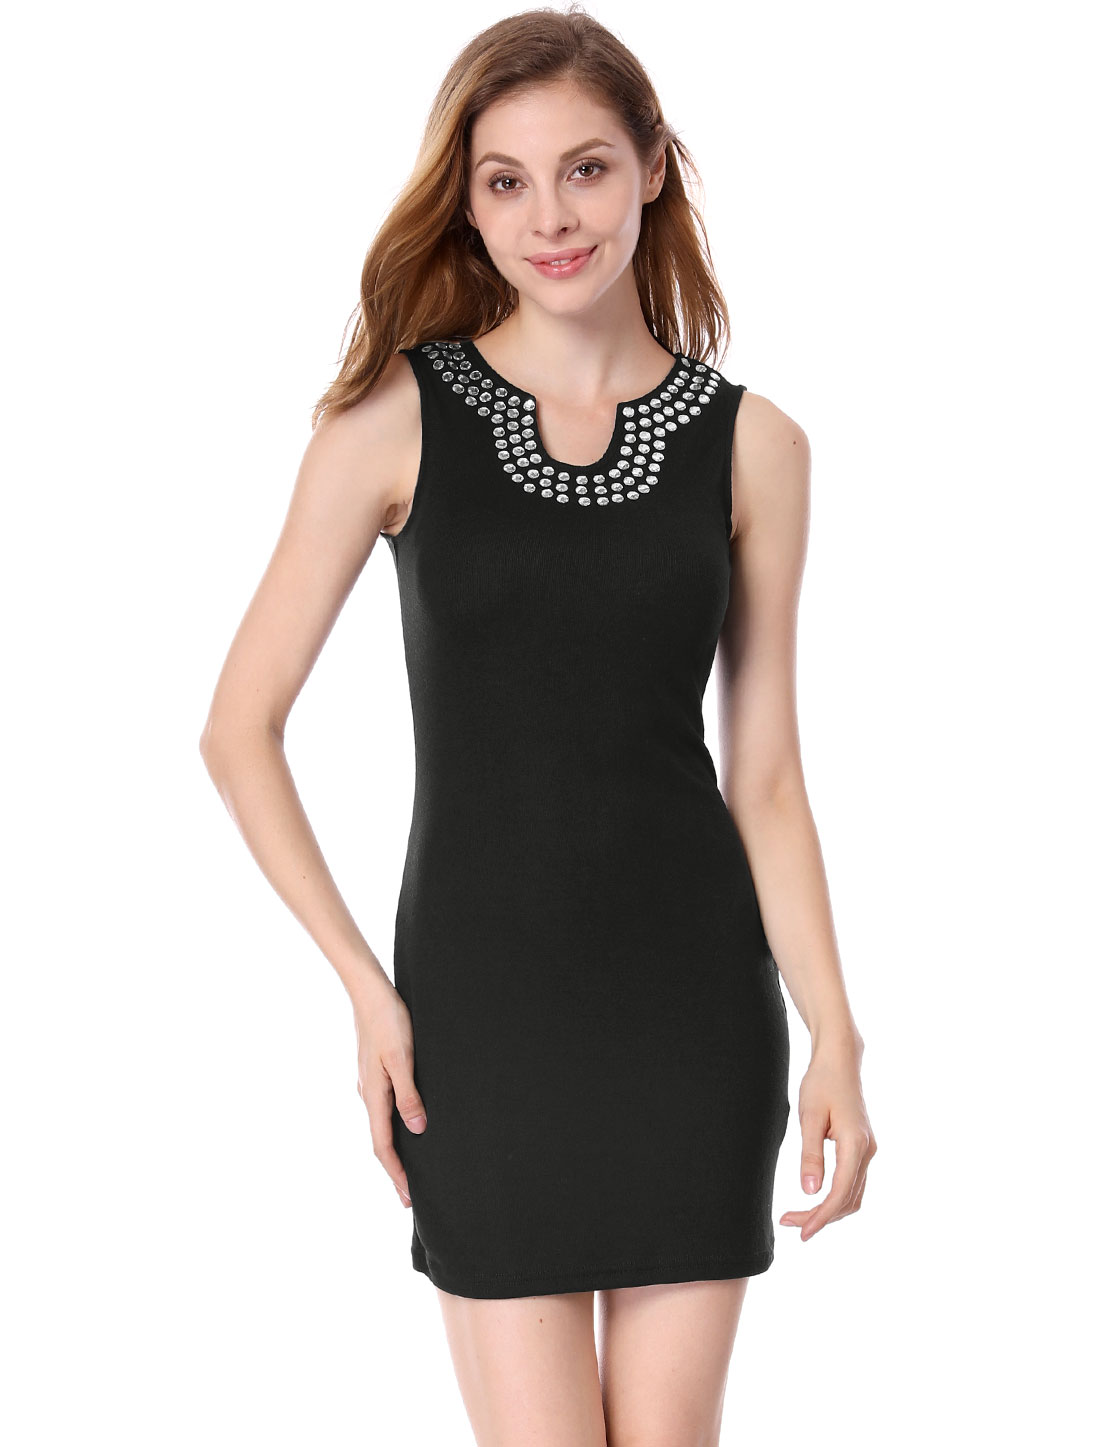 Women Split Neck Beads Unlined Leisure Sheath Dresses Black S